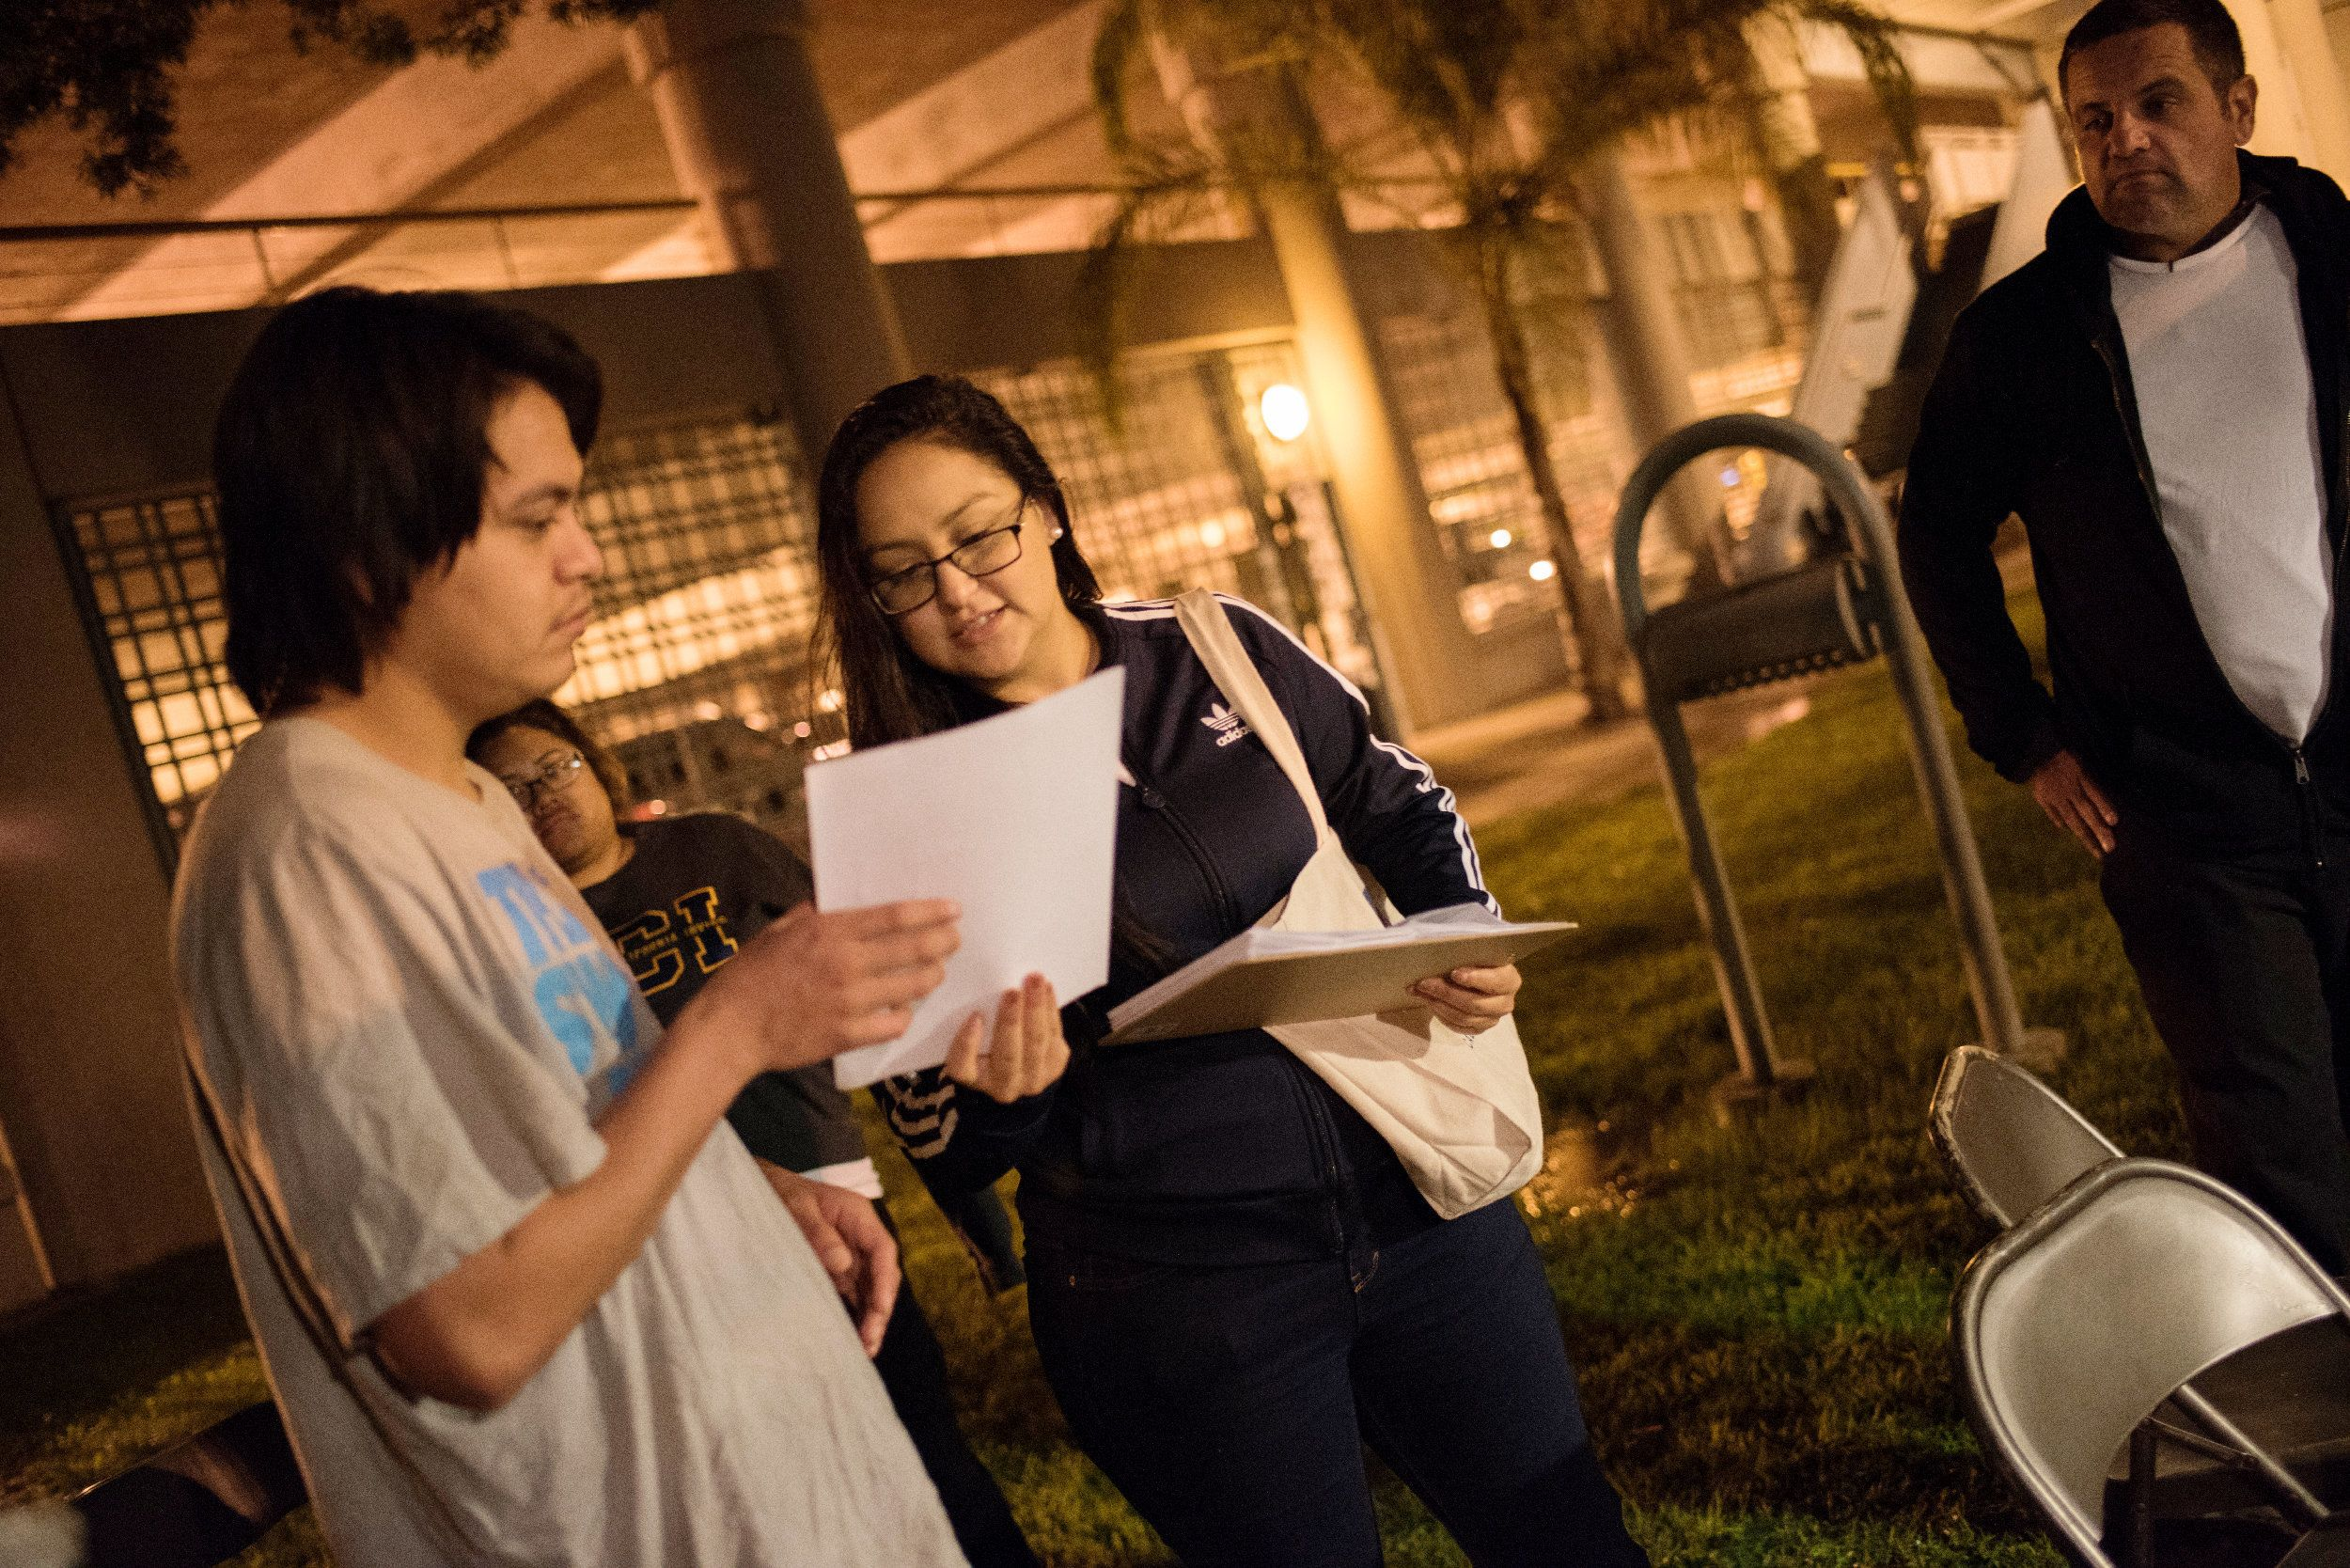 Santa Ana, California | October 5, 2018  Friday night, just after midnight, Daisy Ramirez (center with clipboard), the ACLU's Orange County jail project coordinator talks to a young man who was released from jail moments earlier about registering to vote and his rights as a citizen of California. (Melissa Lyttle for HuffPost)